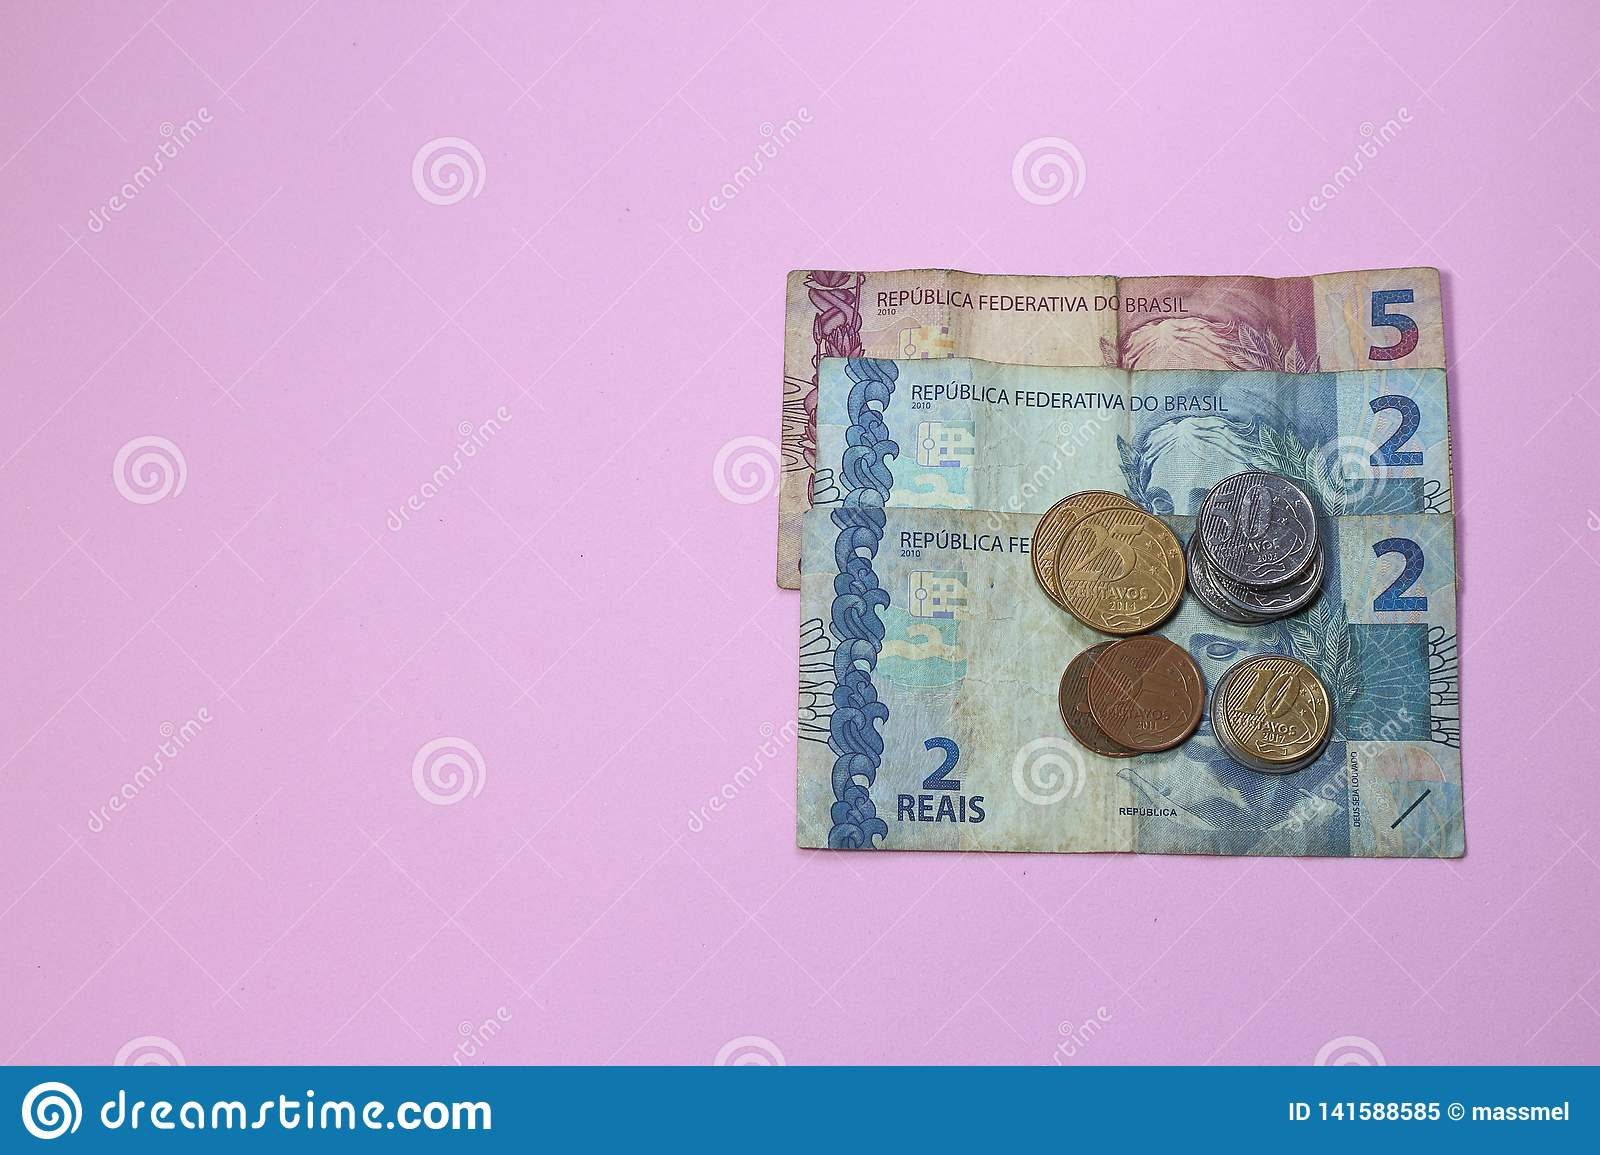 Pile of brazilian money low value on pink background with copy space for text.